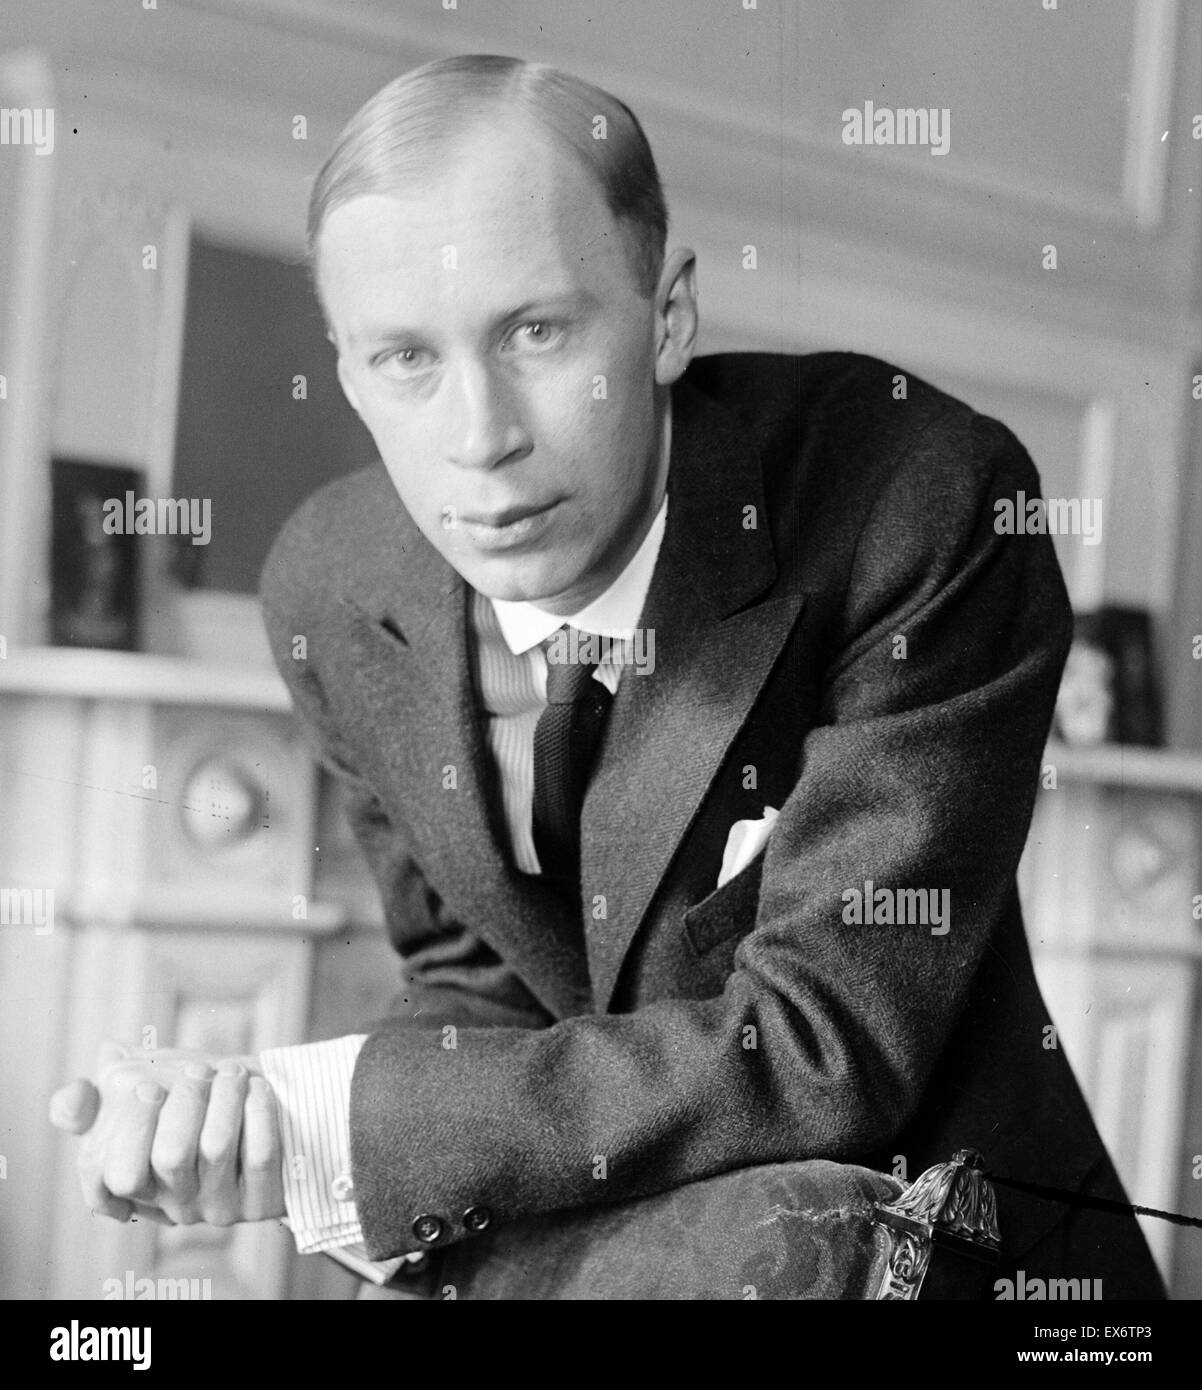 Sergei Vasilyevich Rachmaninoff (1873 – 28 March 1943). Russian composer, pianist, and conductor - Stock Image